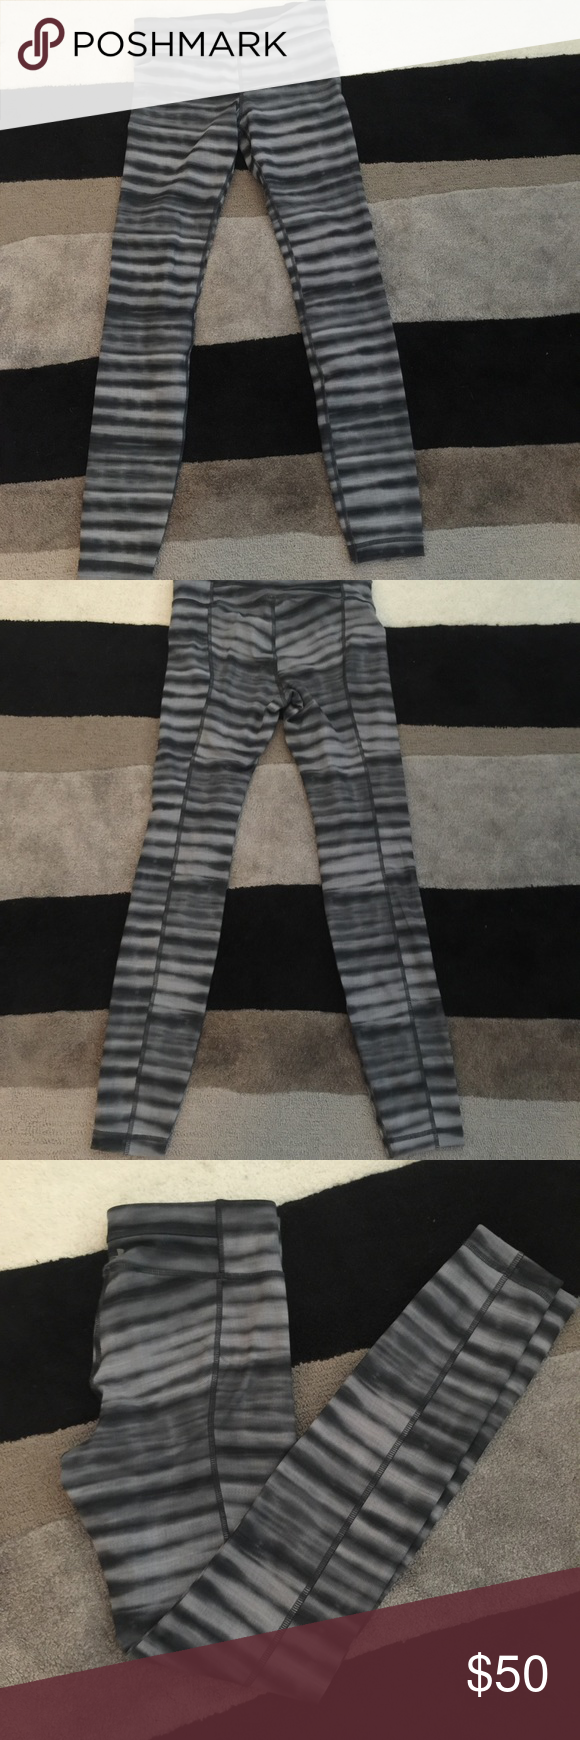 Under Armour studio capris size small Under Armour studio capris long. Size small. New with tag. Small pocket in the front right side for key and change. Feel free to make offer Under Armour Pants Capris